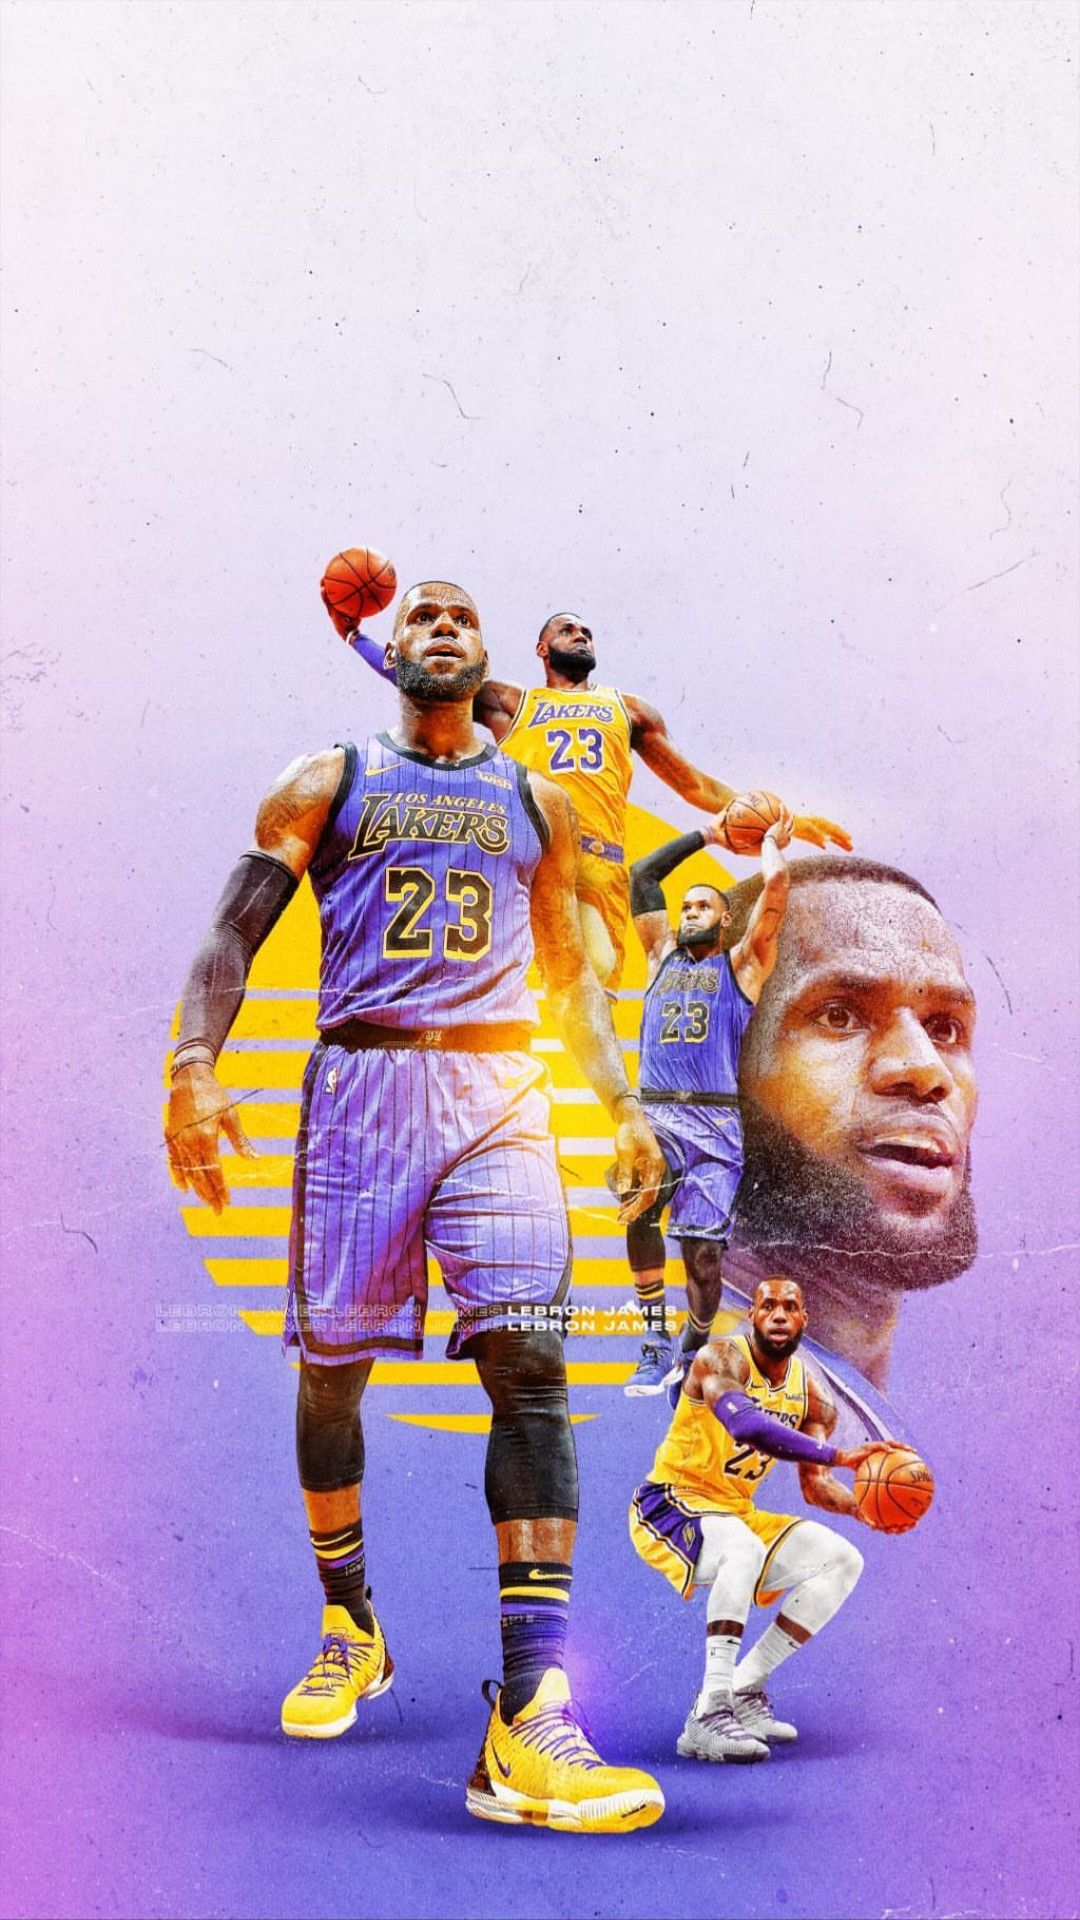 Lebron James Wallpaper Lebron James Lakers Lebron James Wallpapers Nba Lebron James